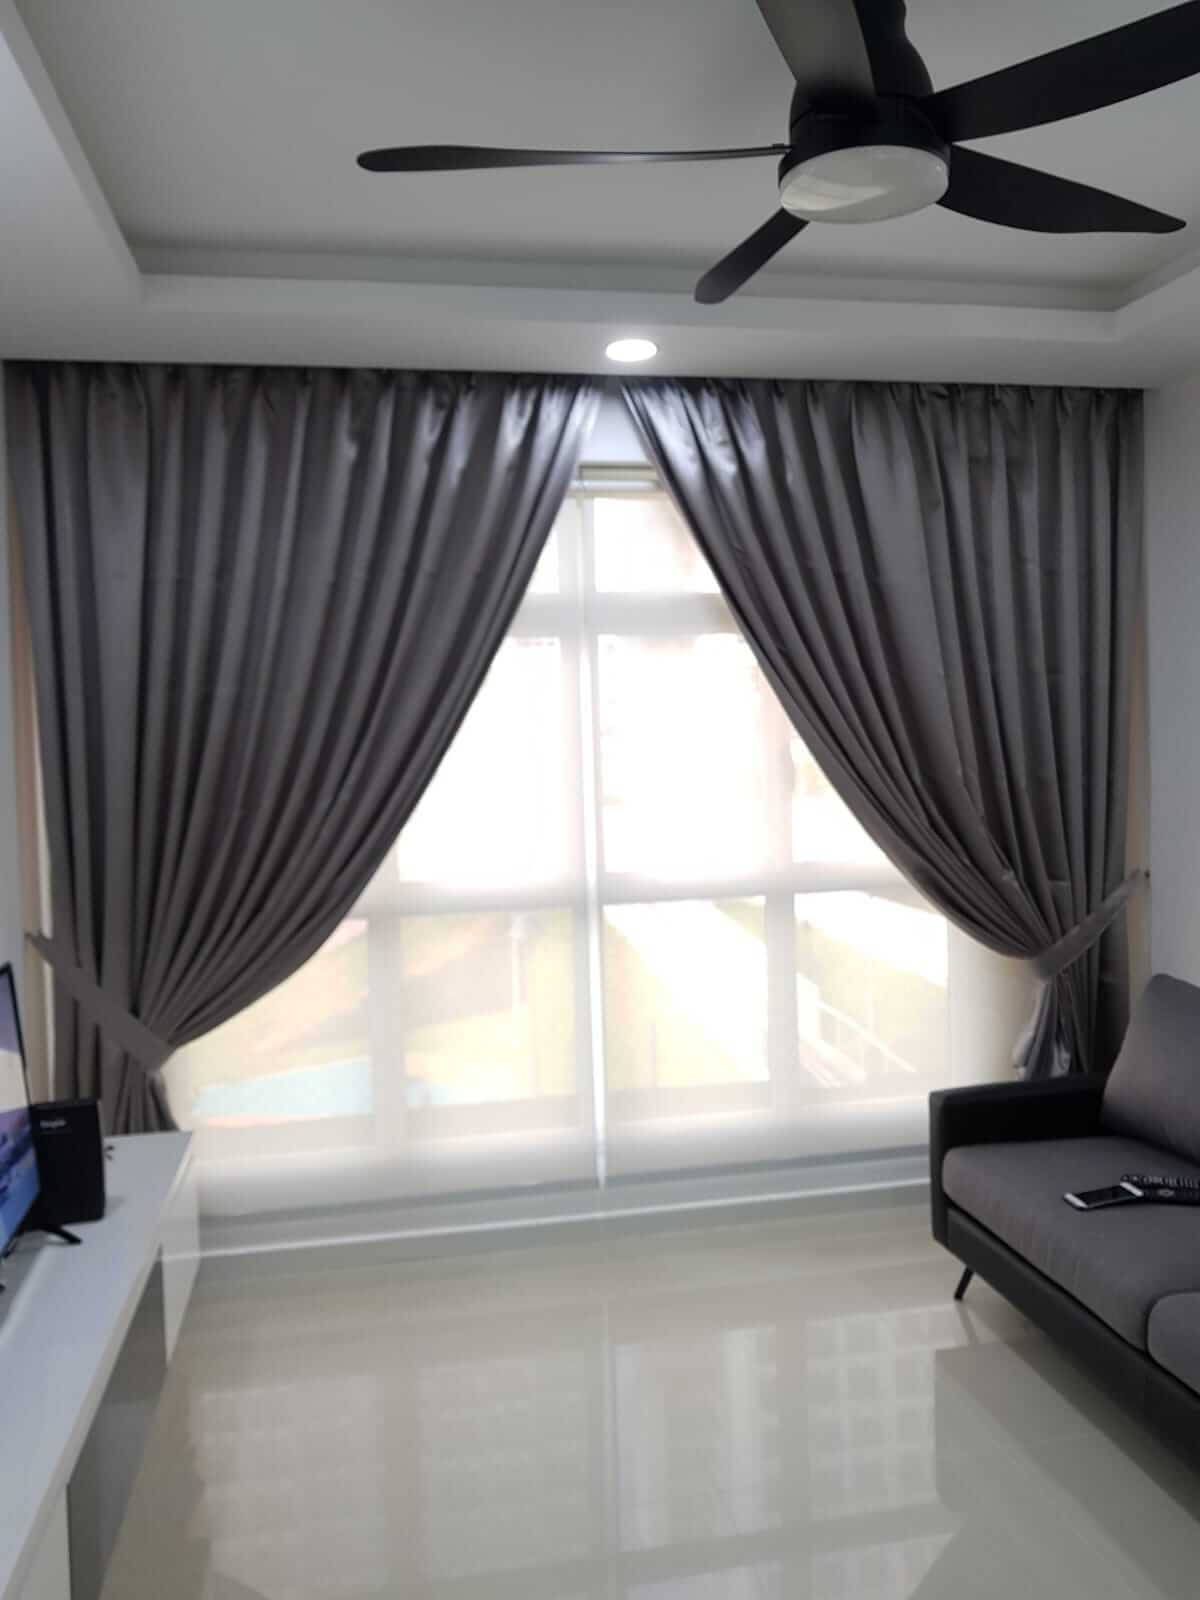 Day roller blinds with night curtains in living room